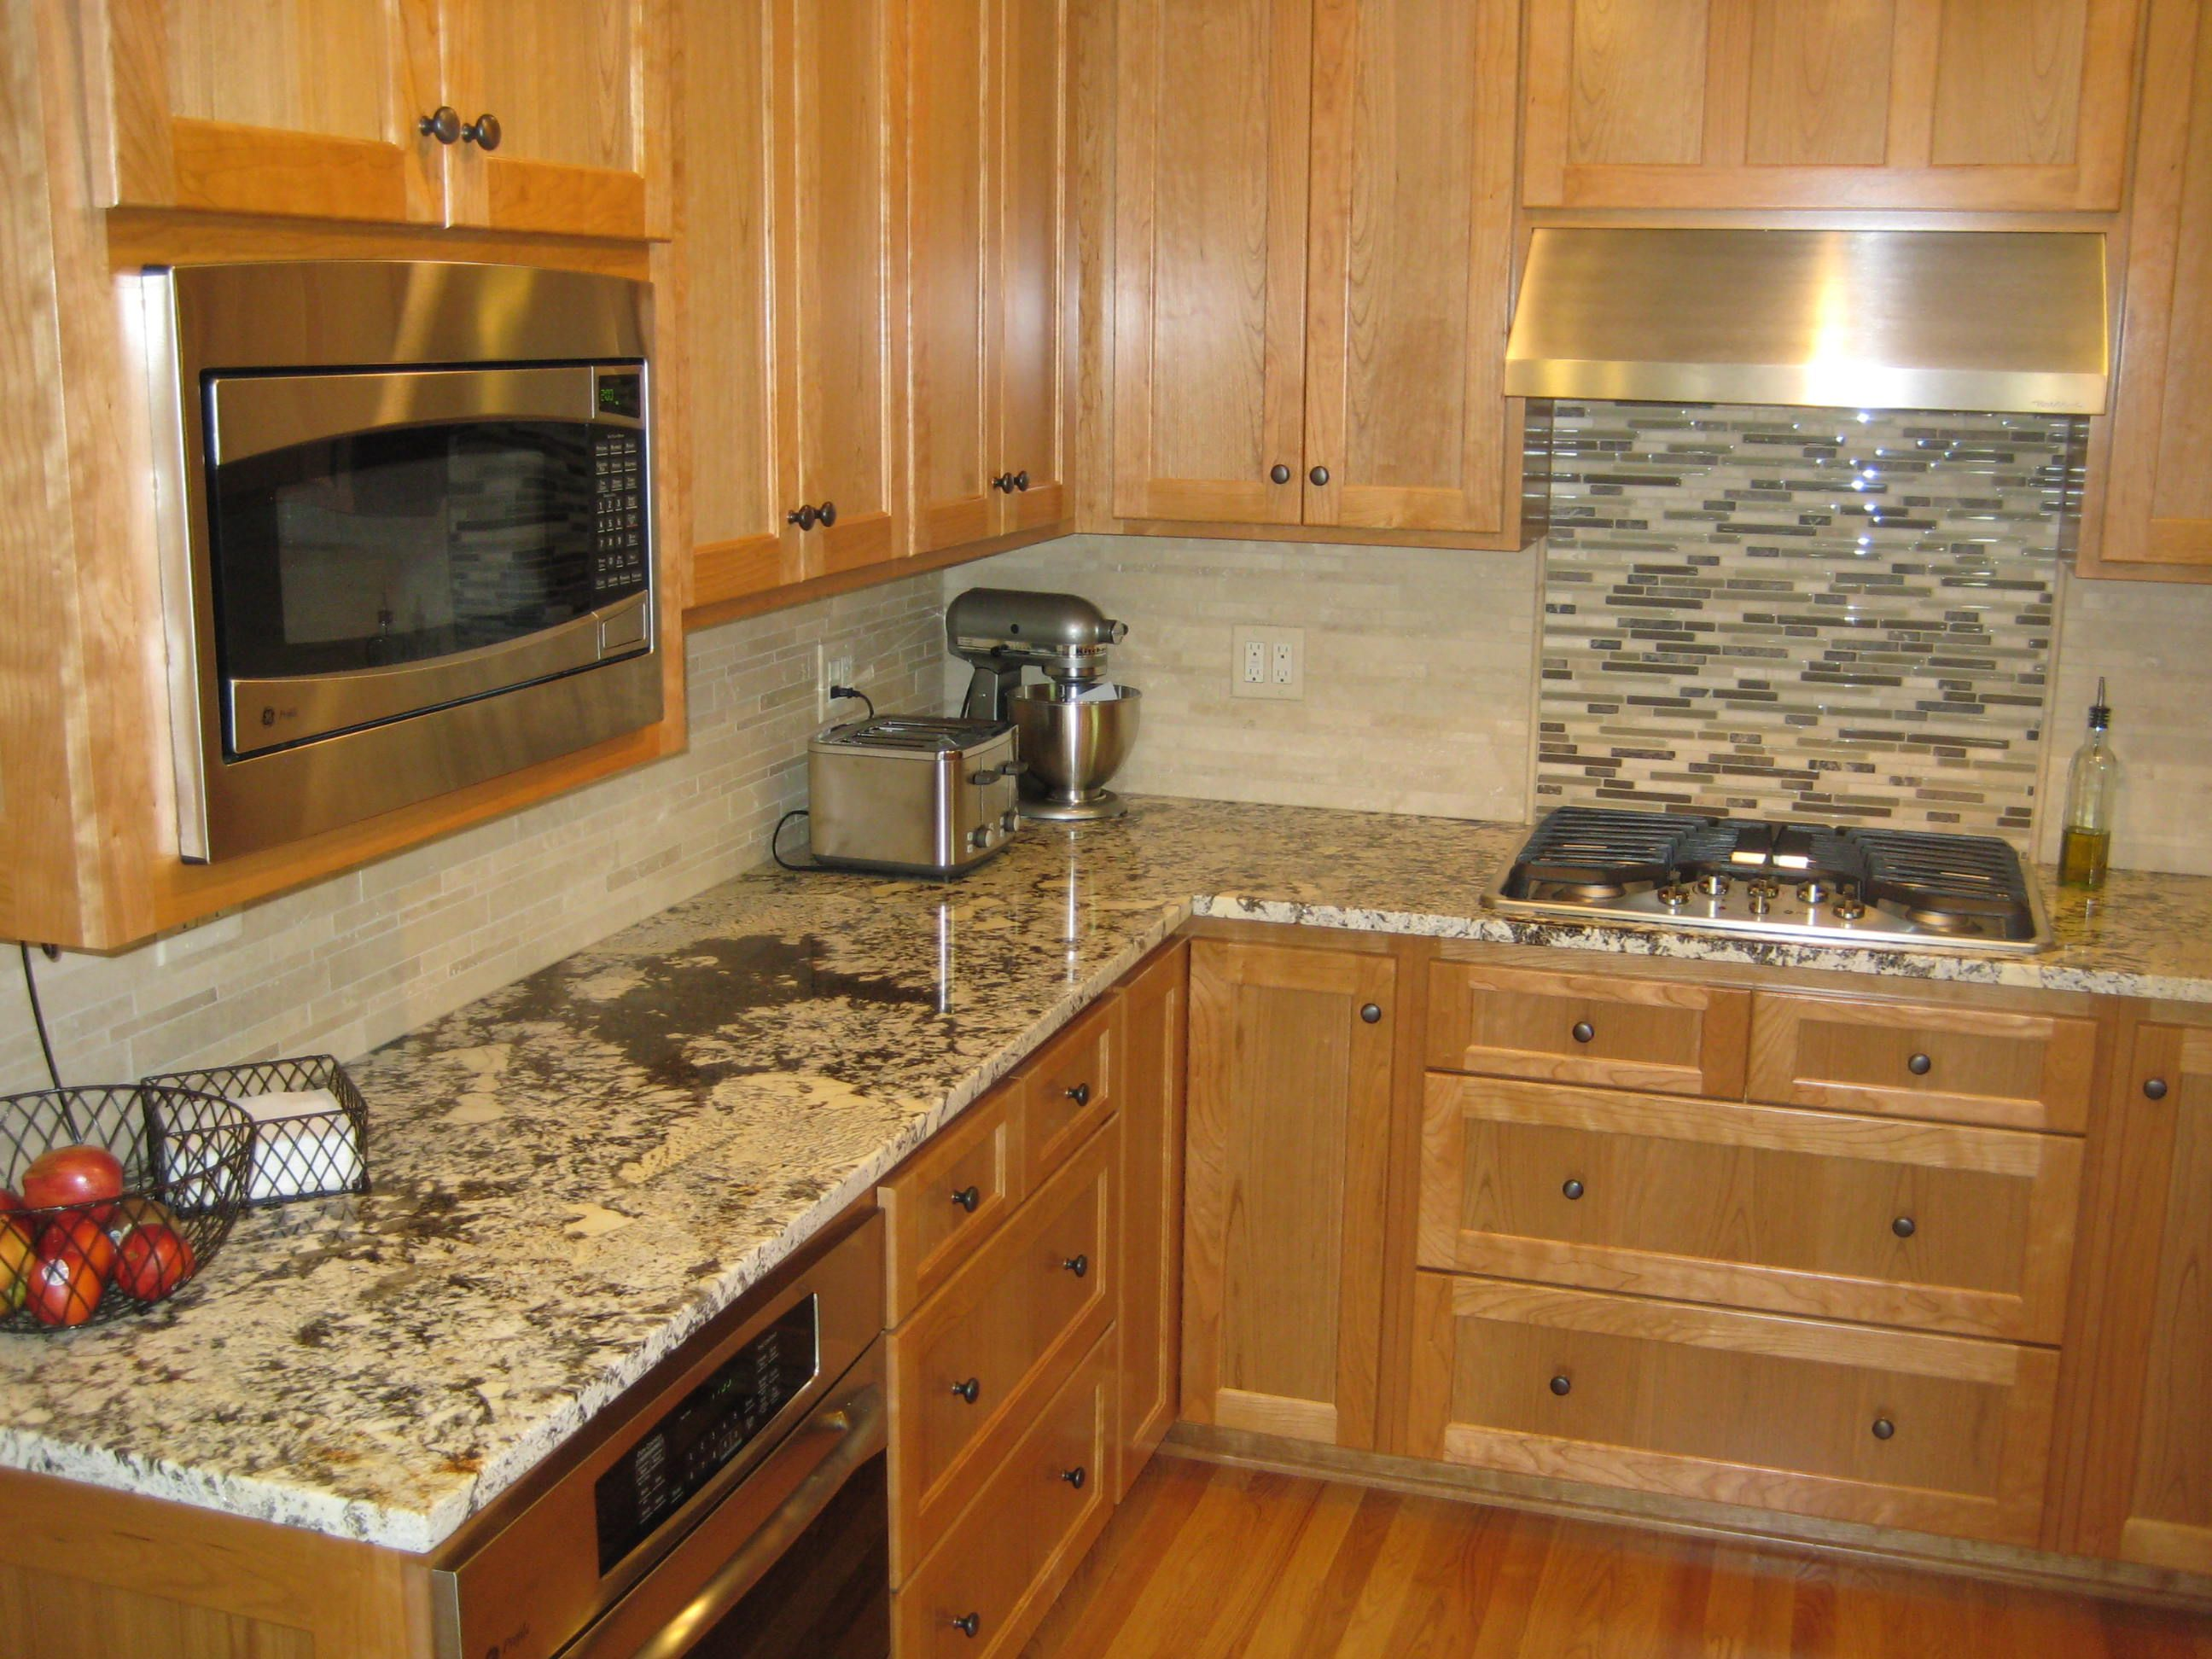 backsplash tile for kitchen ideas bianco antico granite like backsplash but not stove 7577